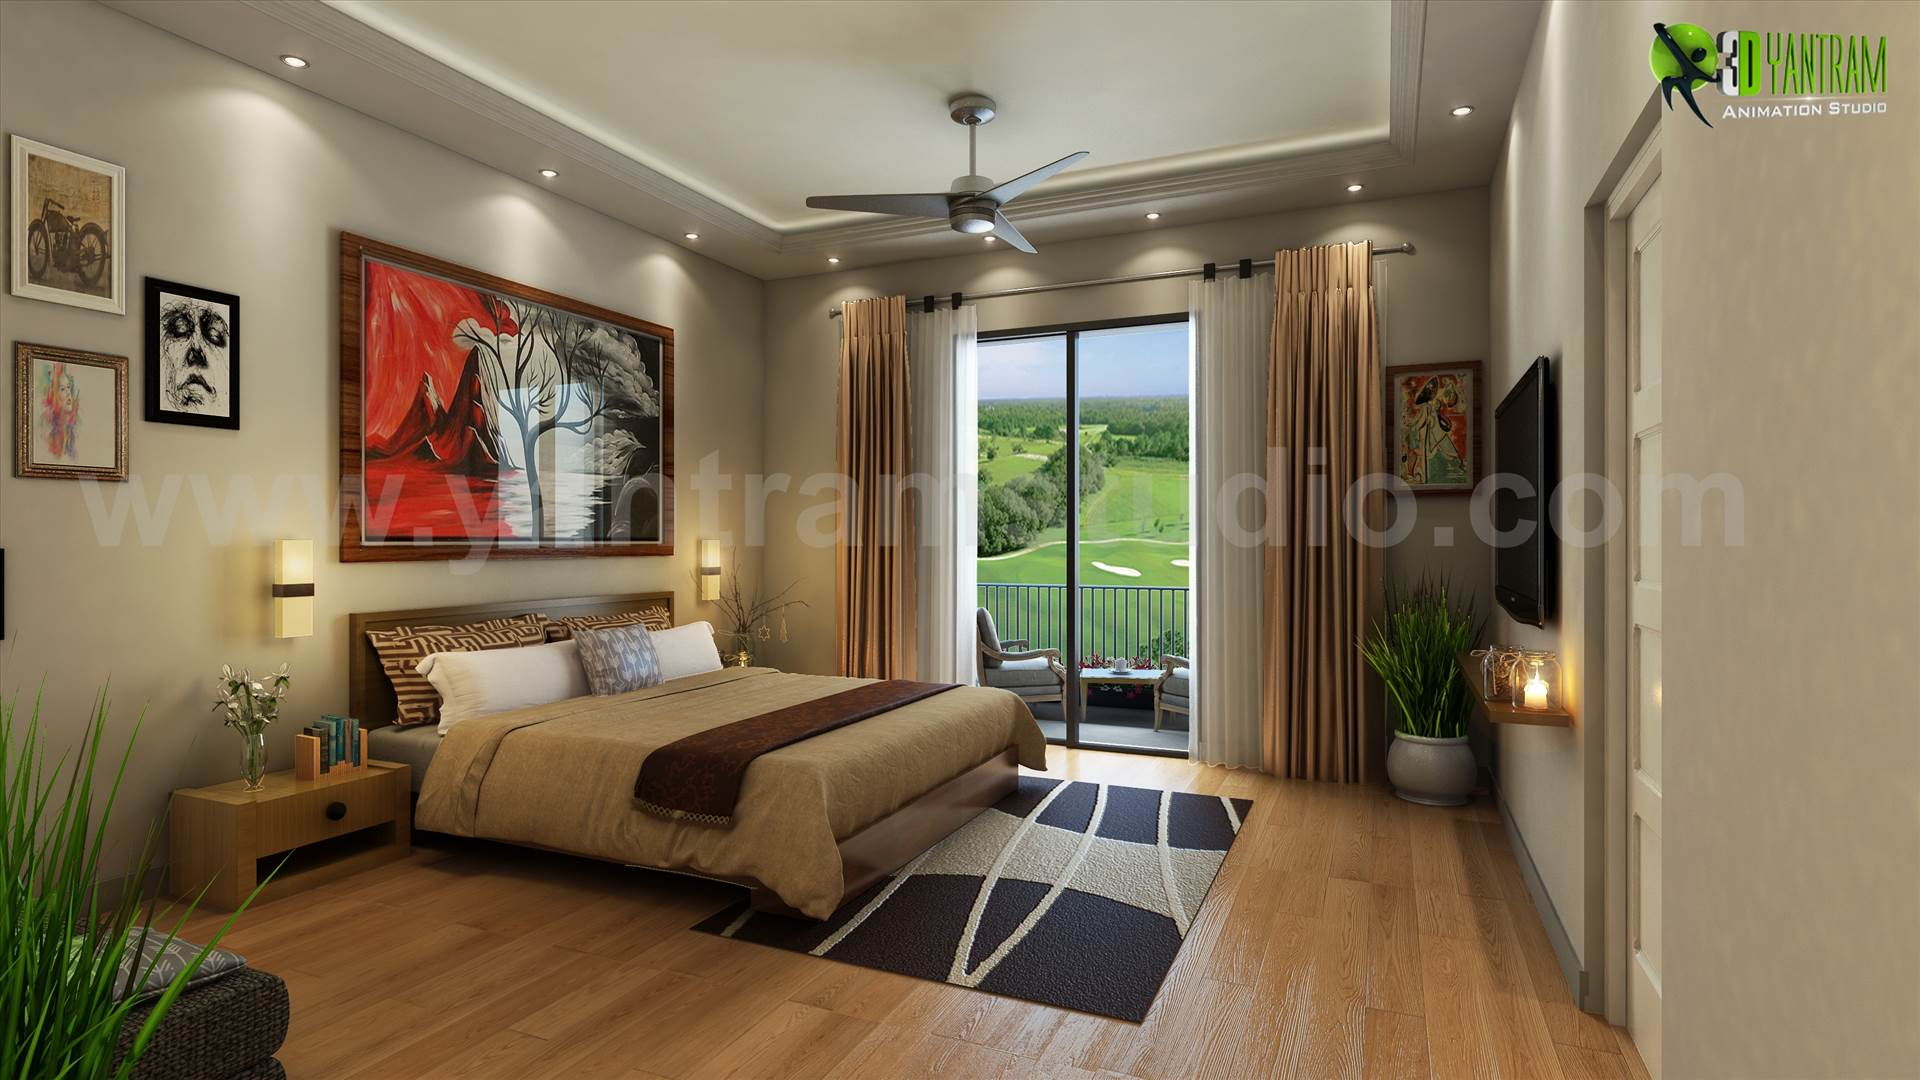 A Best Bedroom View with Gold Back Ground View  - architectural design home plans  by yantramstudio